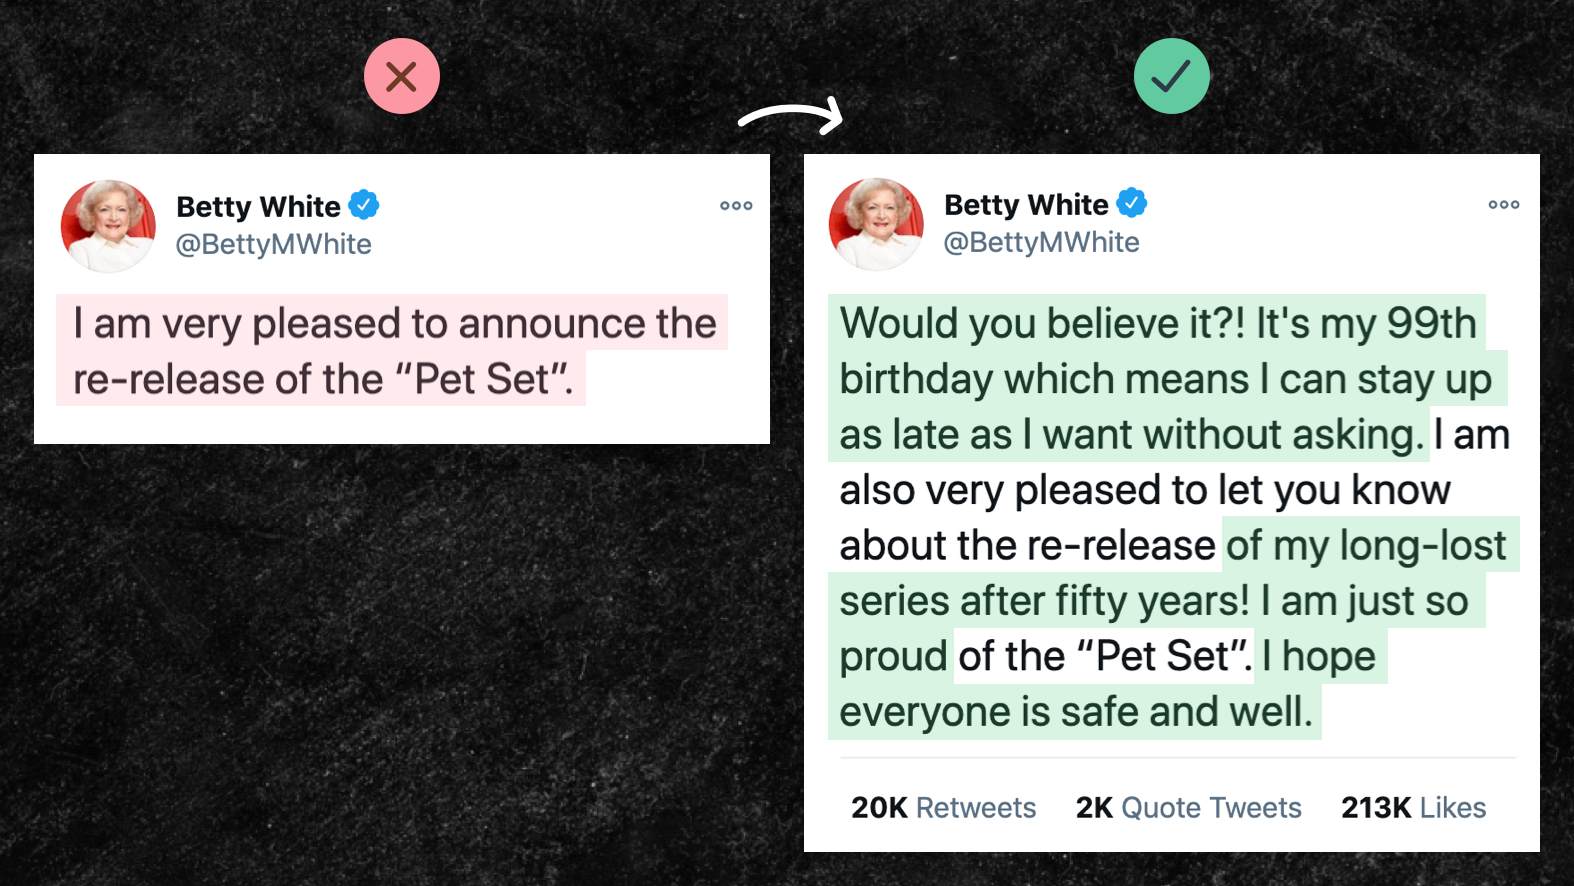 """Photo of a side-by-side tweet comparison. The bad tweet on the left reads """"I am pleased to announce the re-release of the pet set. The good tweet on the right reads """"Would you believe it? It's my 99th birthday which means I can stay up as late as I want without asking. I am also very pleased to let you know about the re-release of my long-lost series after fifty years! I am just so proud of the pet set. I hope everyone is safe and well."""""""